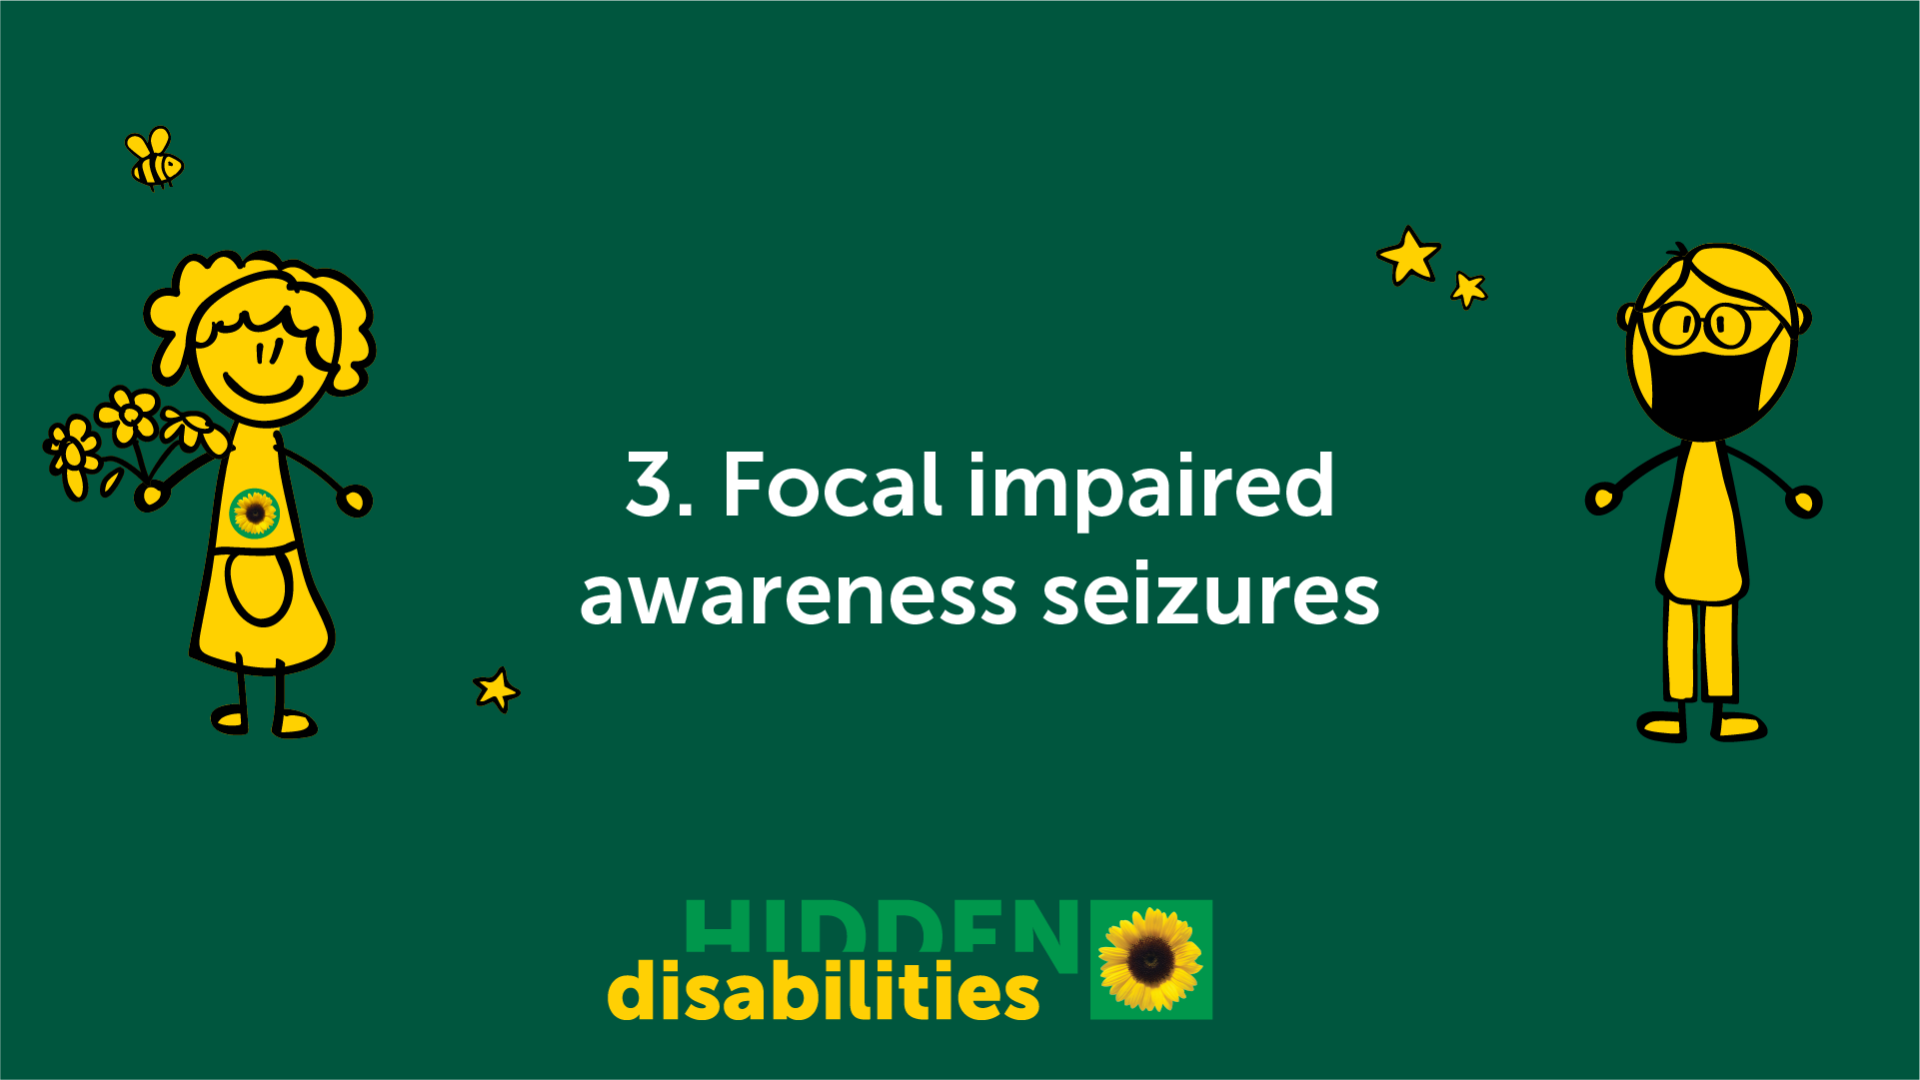 Focal impaired awareness seizures